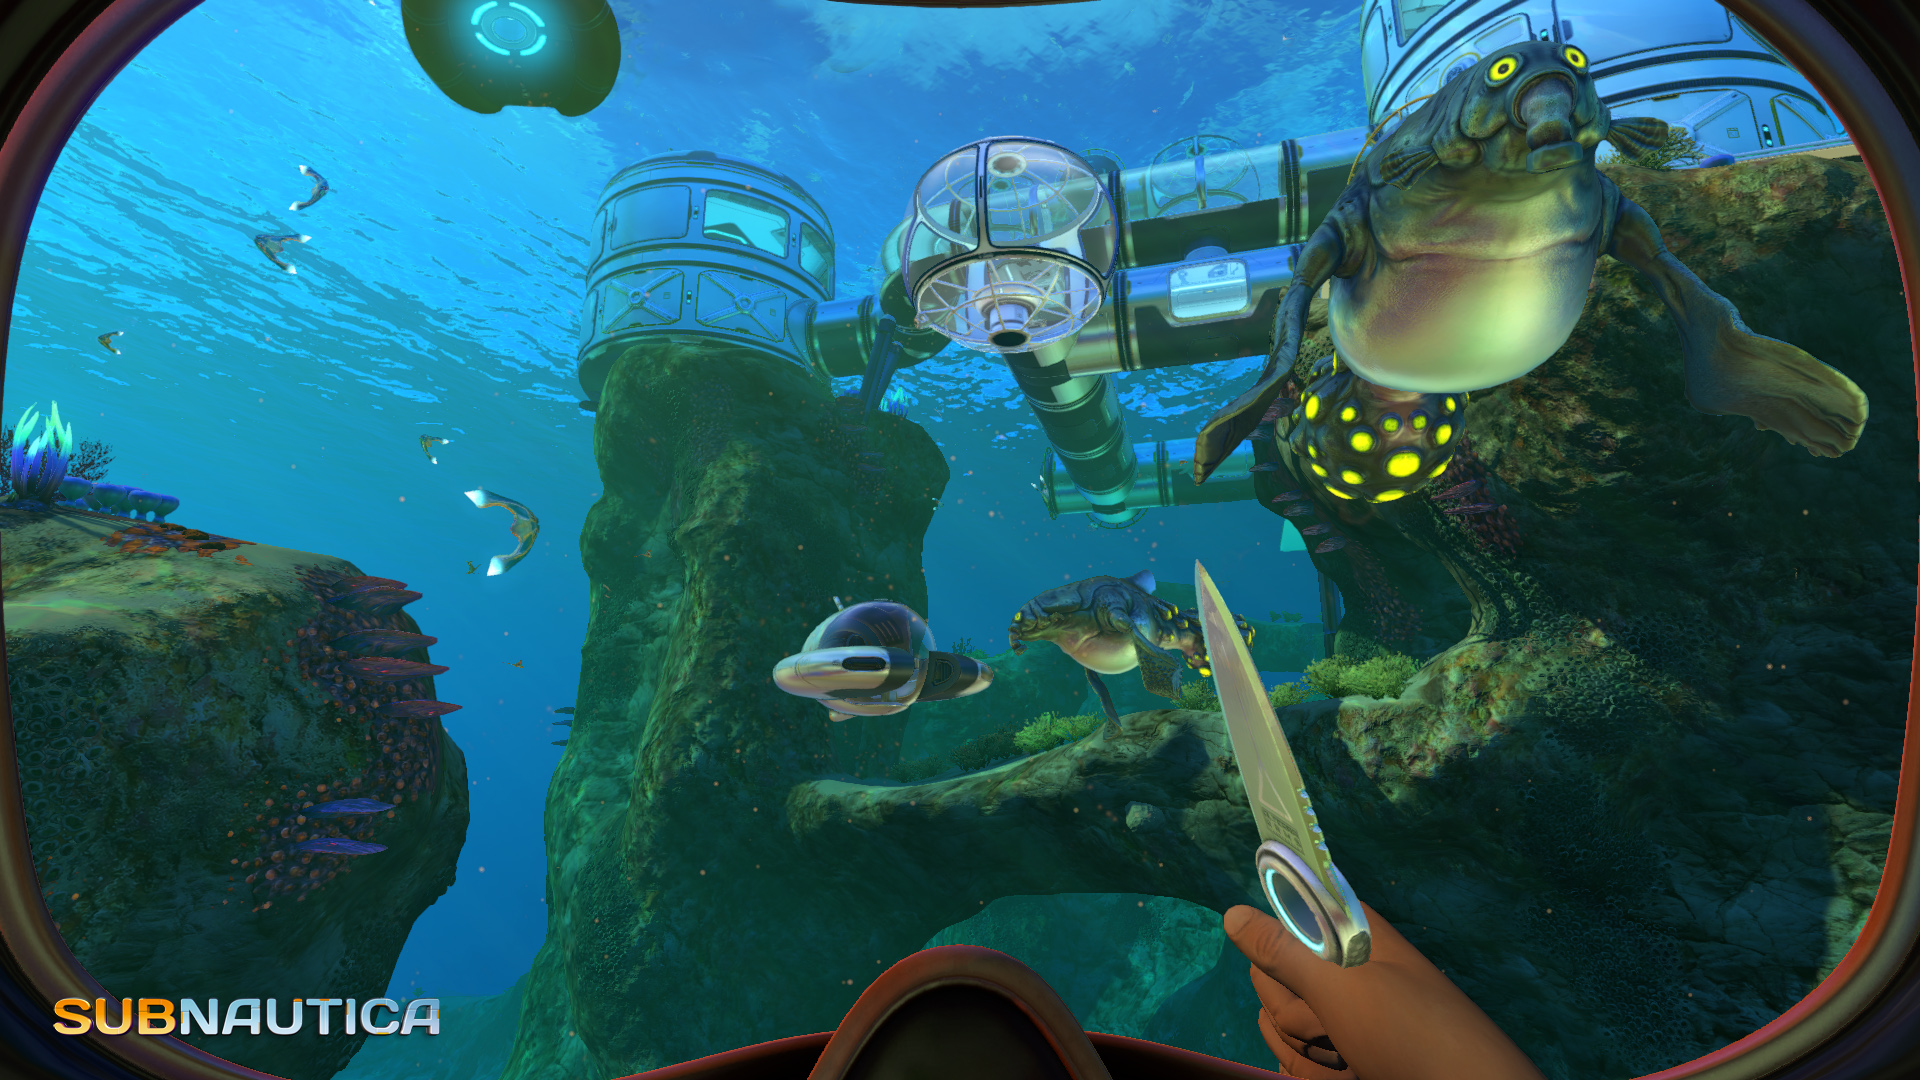 Screenshot for the game Subnautica [60026] (2018) PC | RePack от R.G. Механики